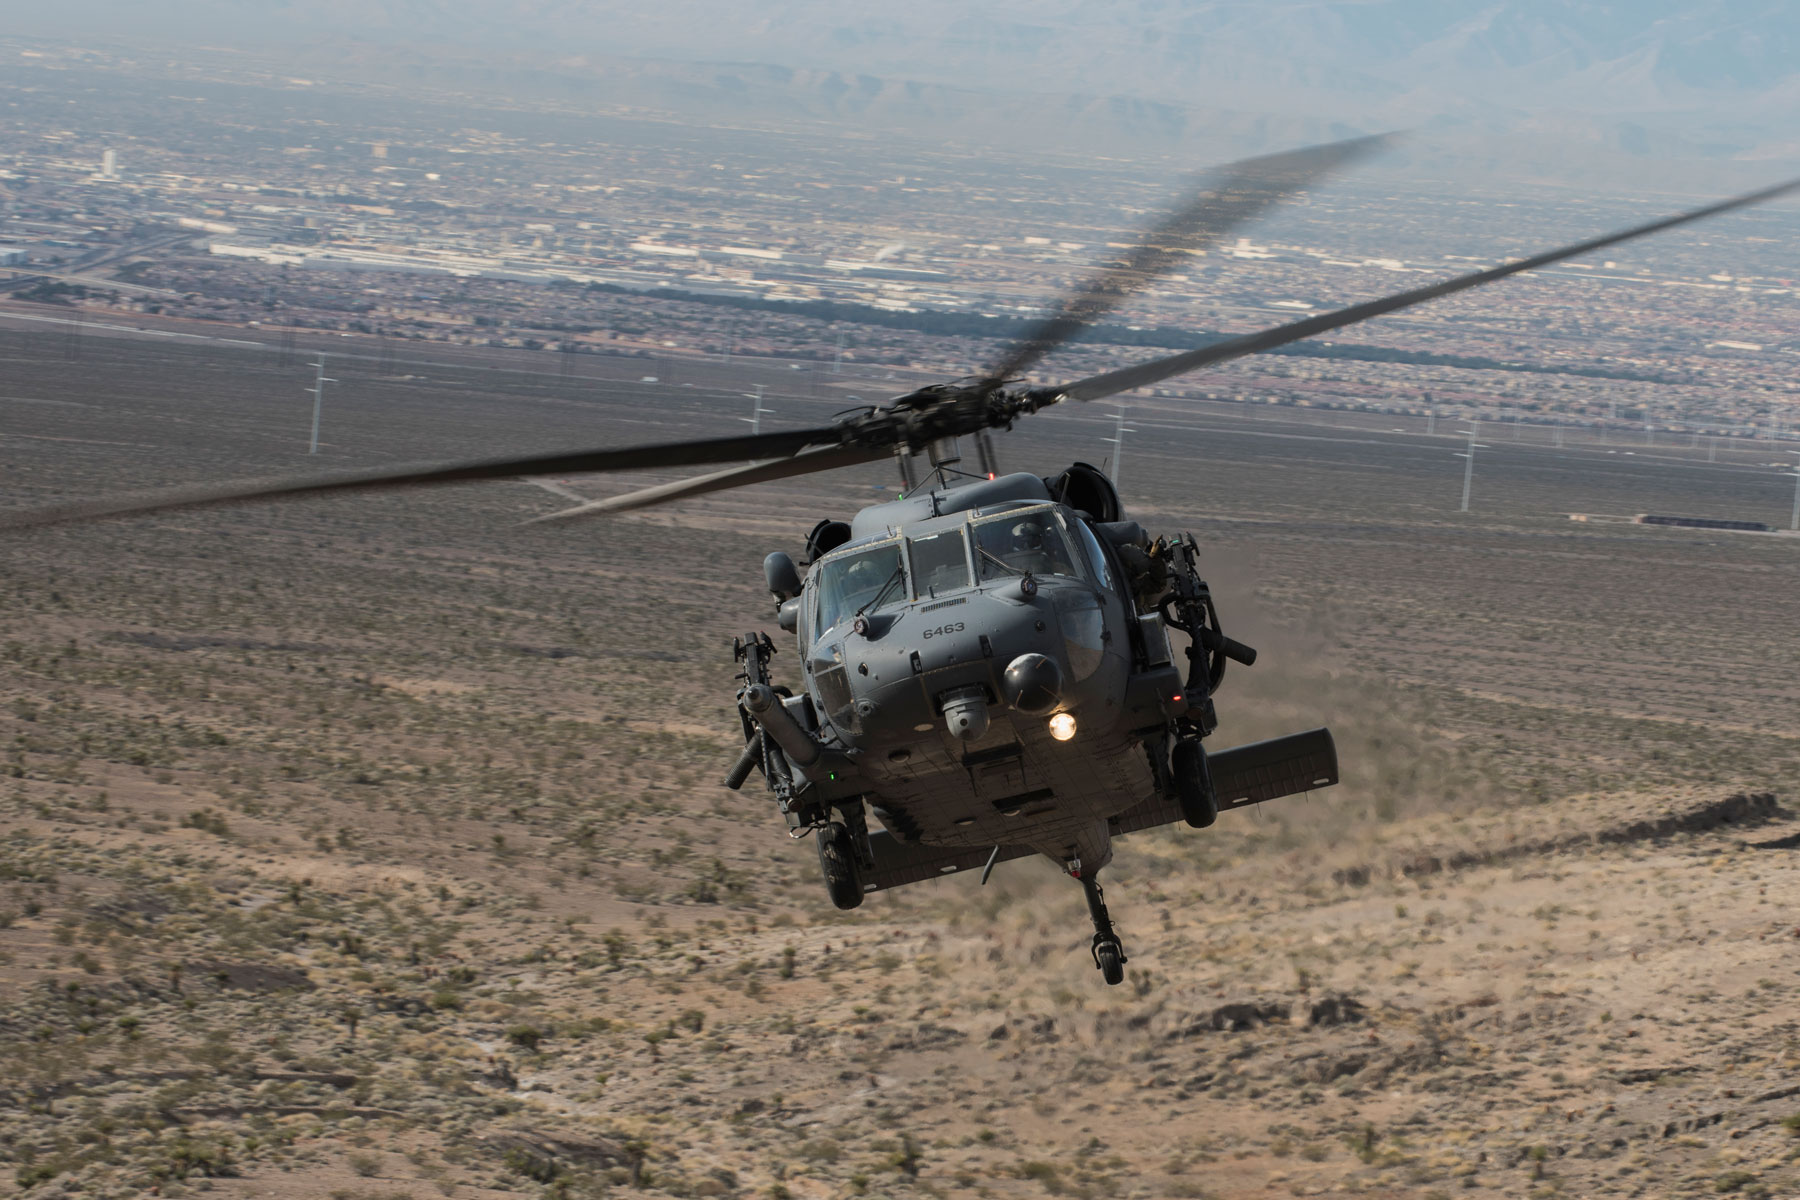 hight resolution of pave hawk hit steel cable in iraq causing fatal crash air force